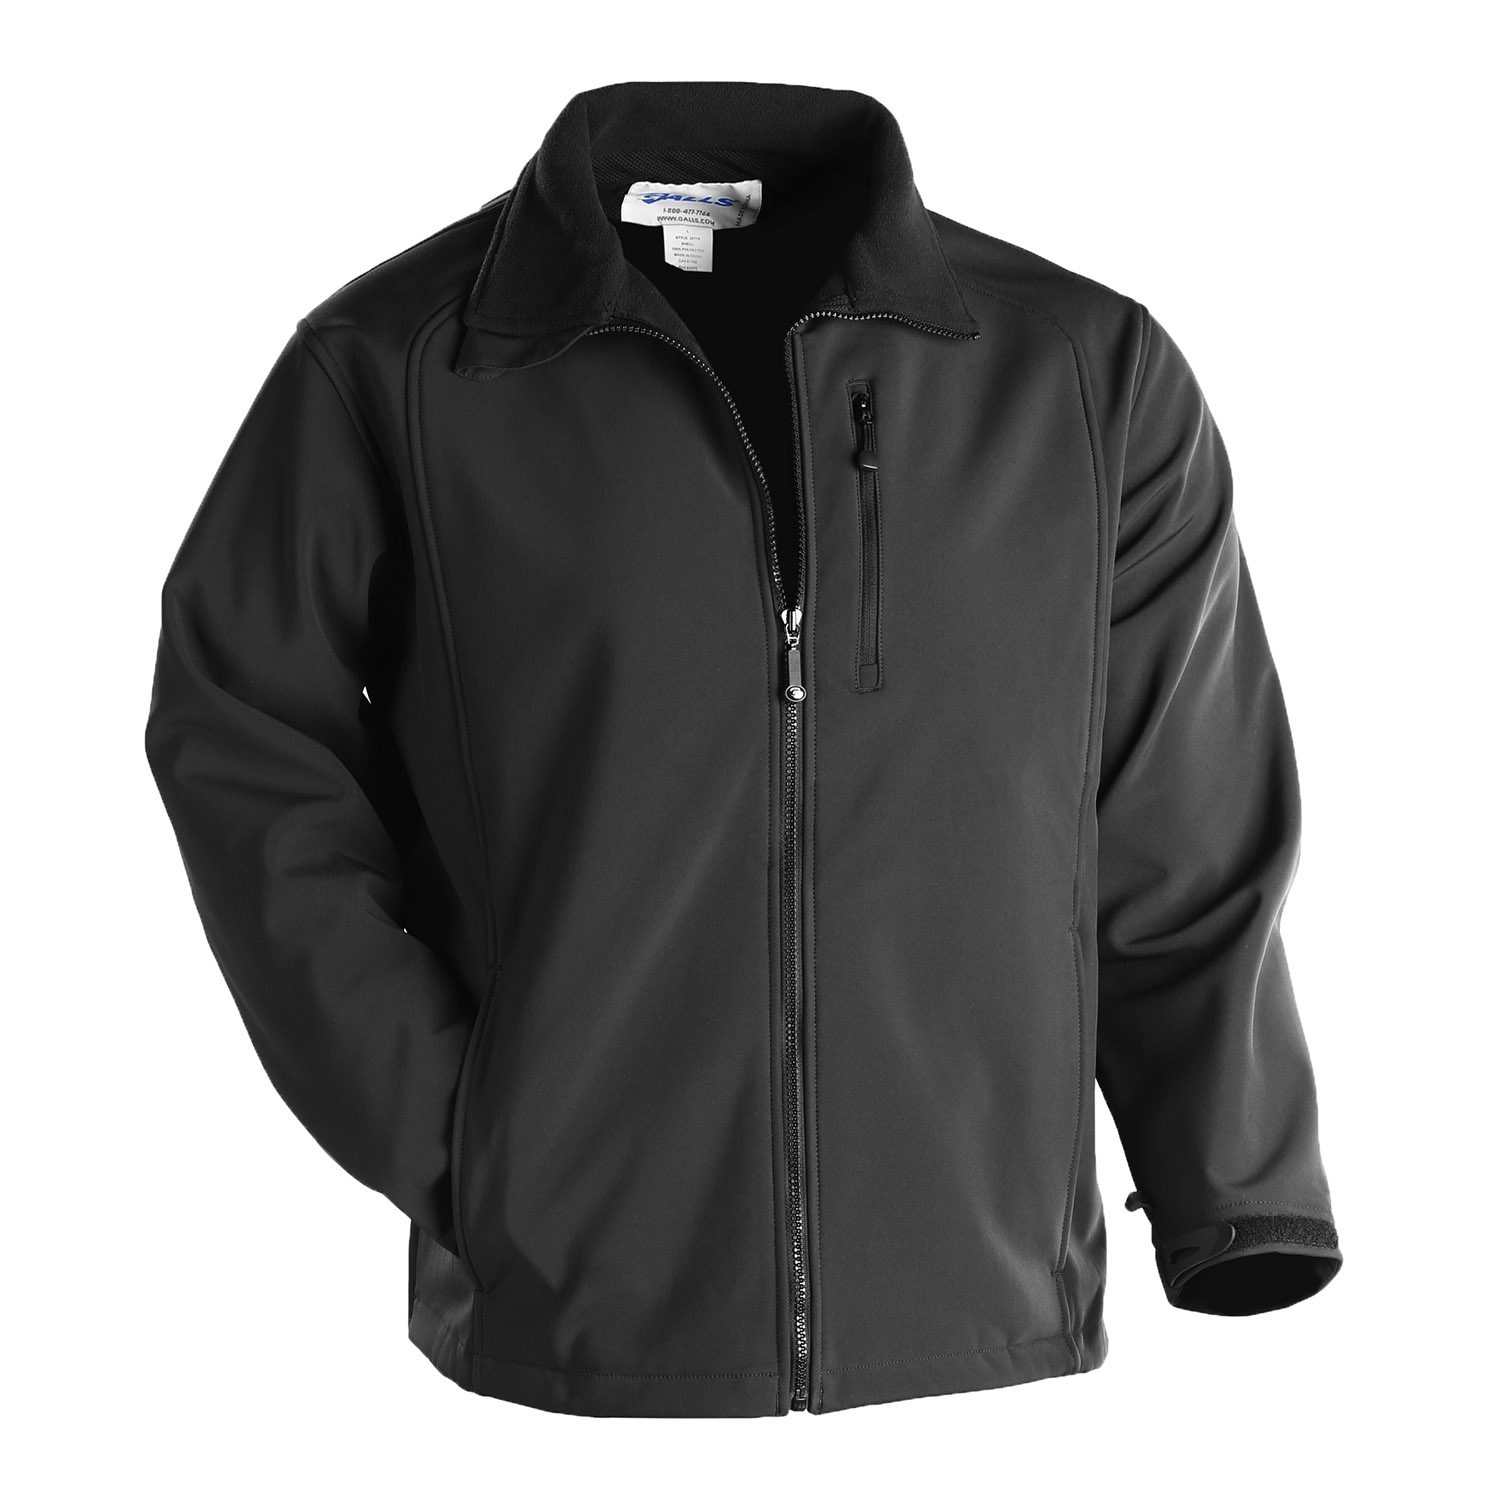 Galls Agent LTC G-Tac Soft-Shell Jacket